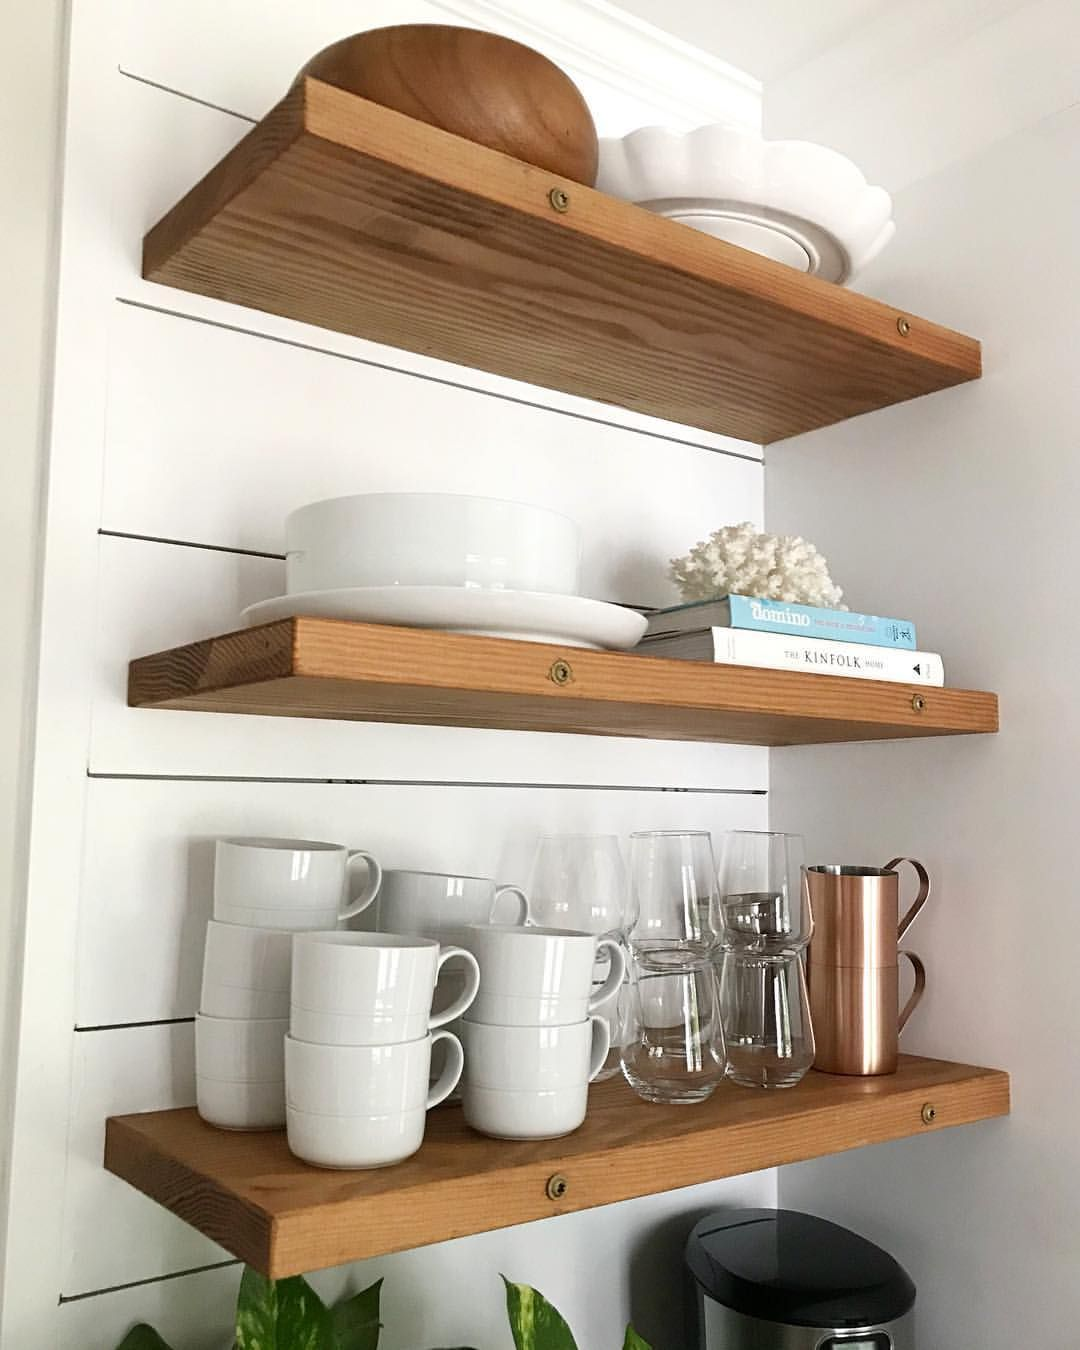 floating kitchen shelves with white dishes kitchenshelves wall coat storage secret cabinet rustic cupboard boxes electronic sky box shelf bookshelf ideas stand and shoe rack